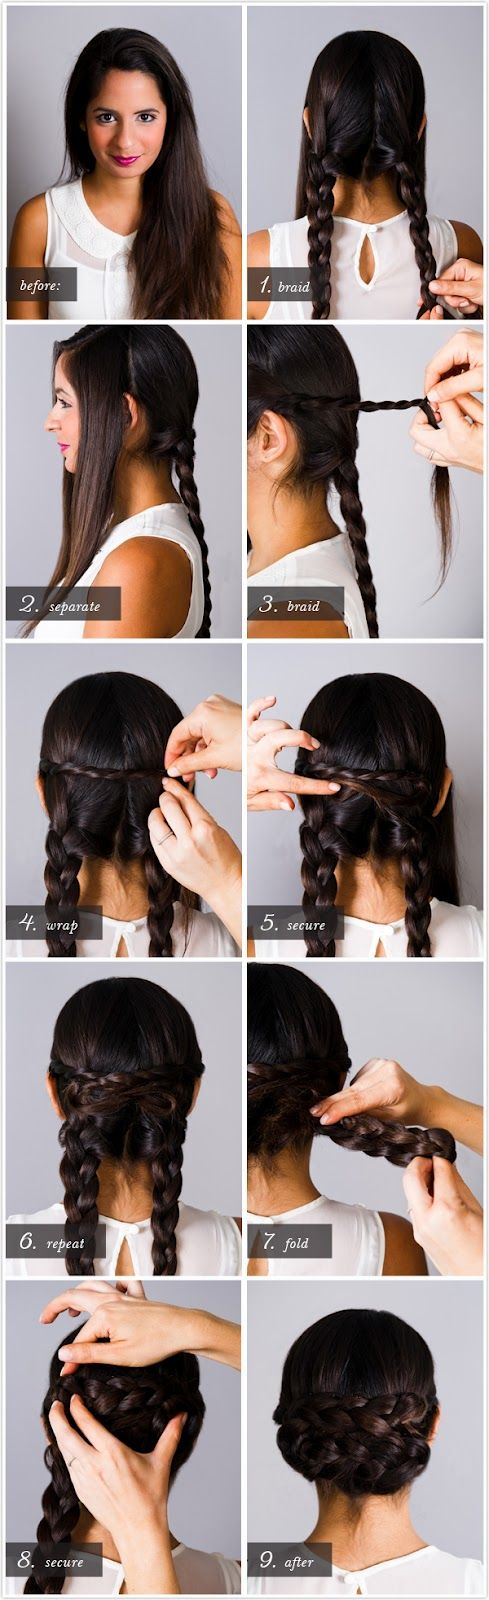 Easy Braided Updos For Shoulder Length Hair : 327 best braided hairstyles images on pinterest